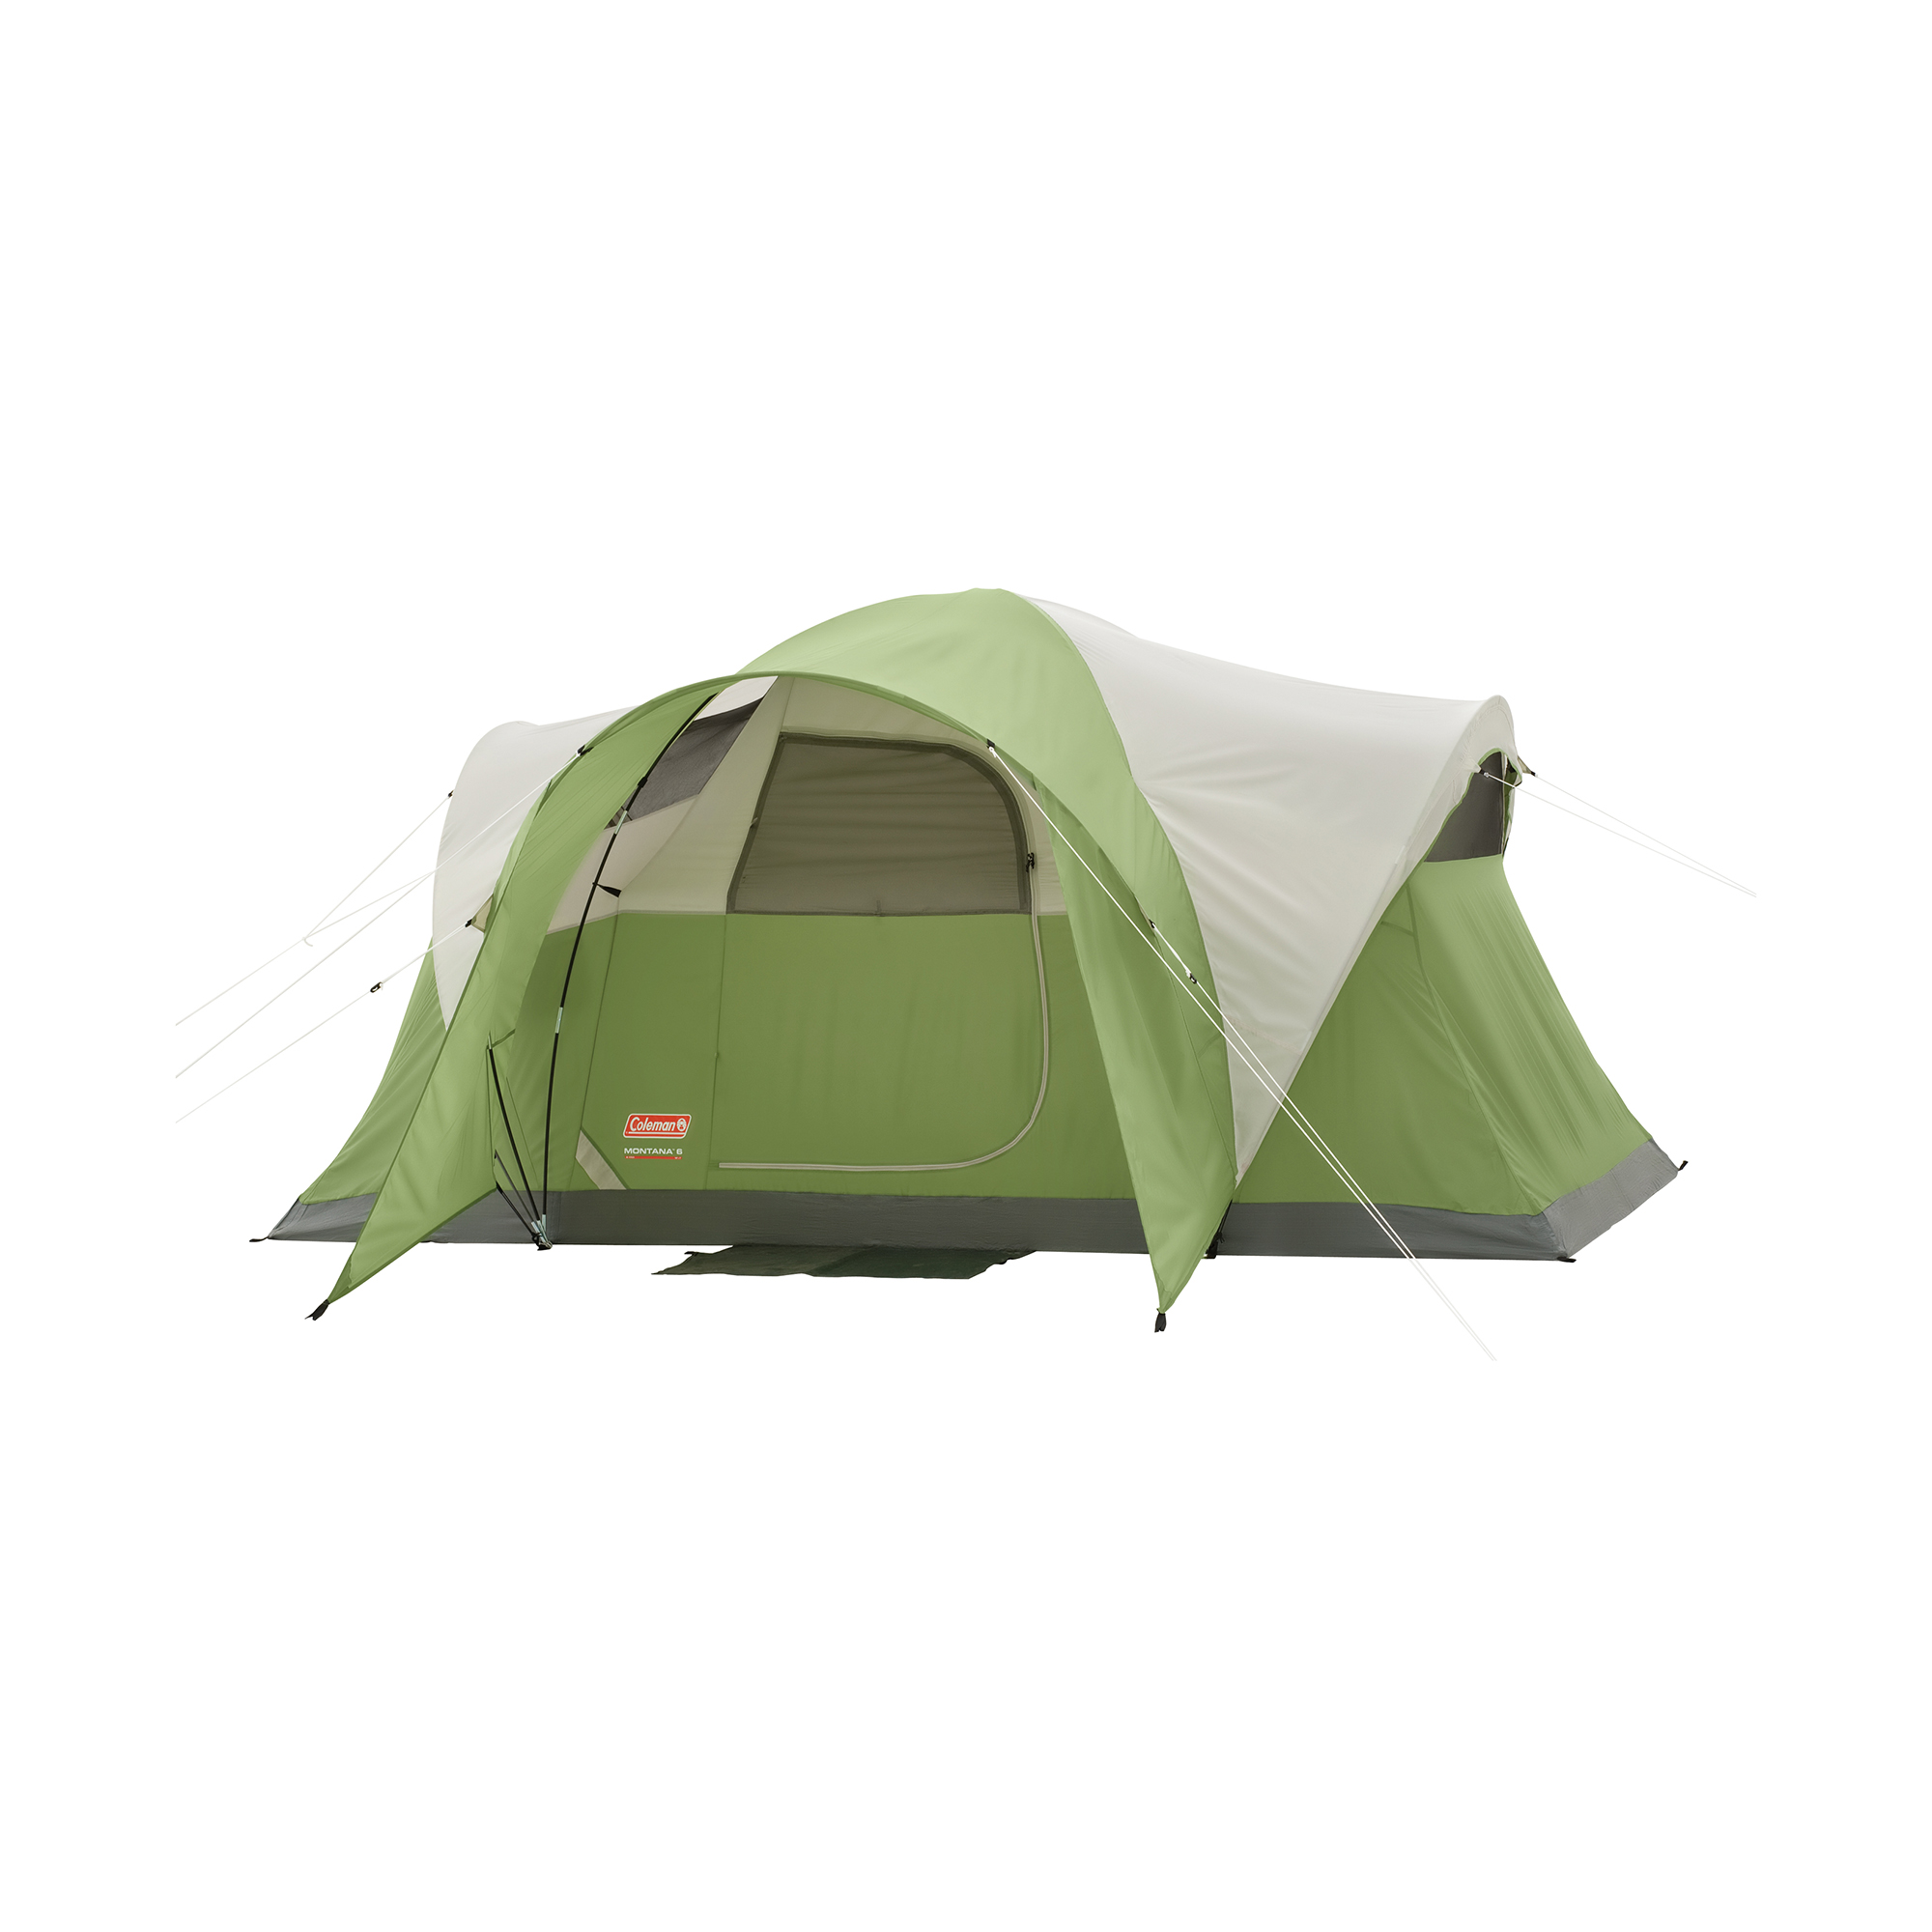 Coleman Montana 12' x 7' Modified Dome Tent, Sleeps 6 by COLEMAN